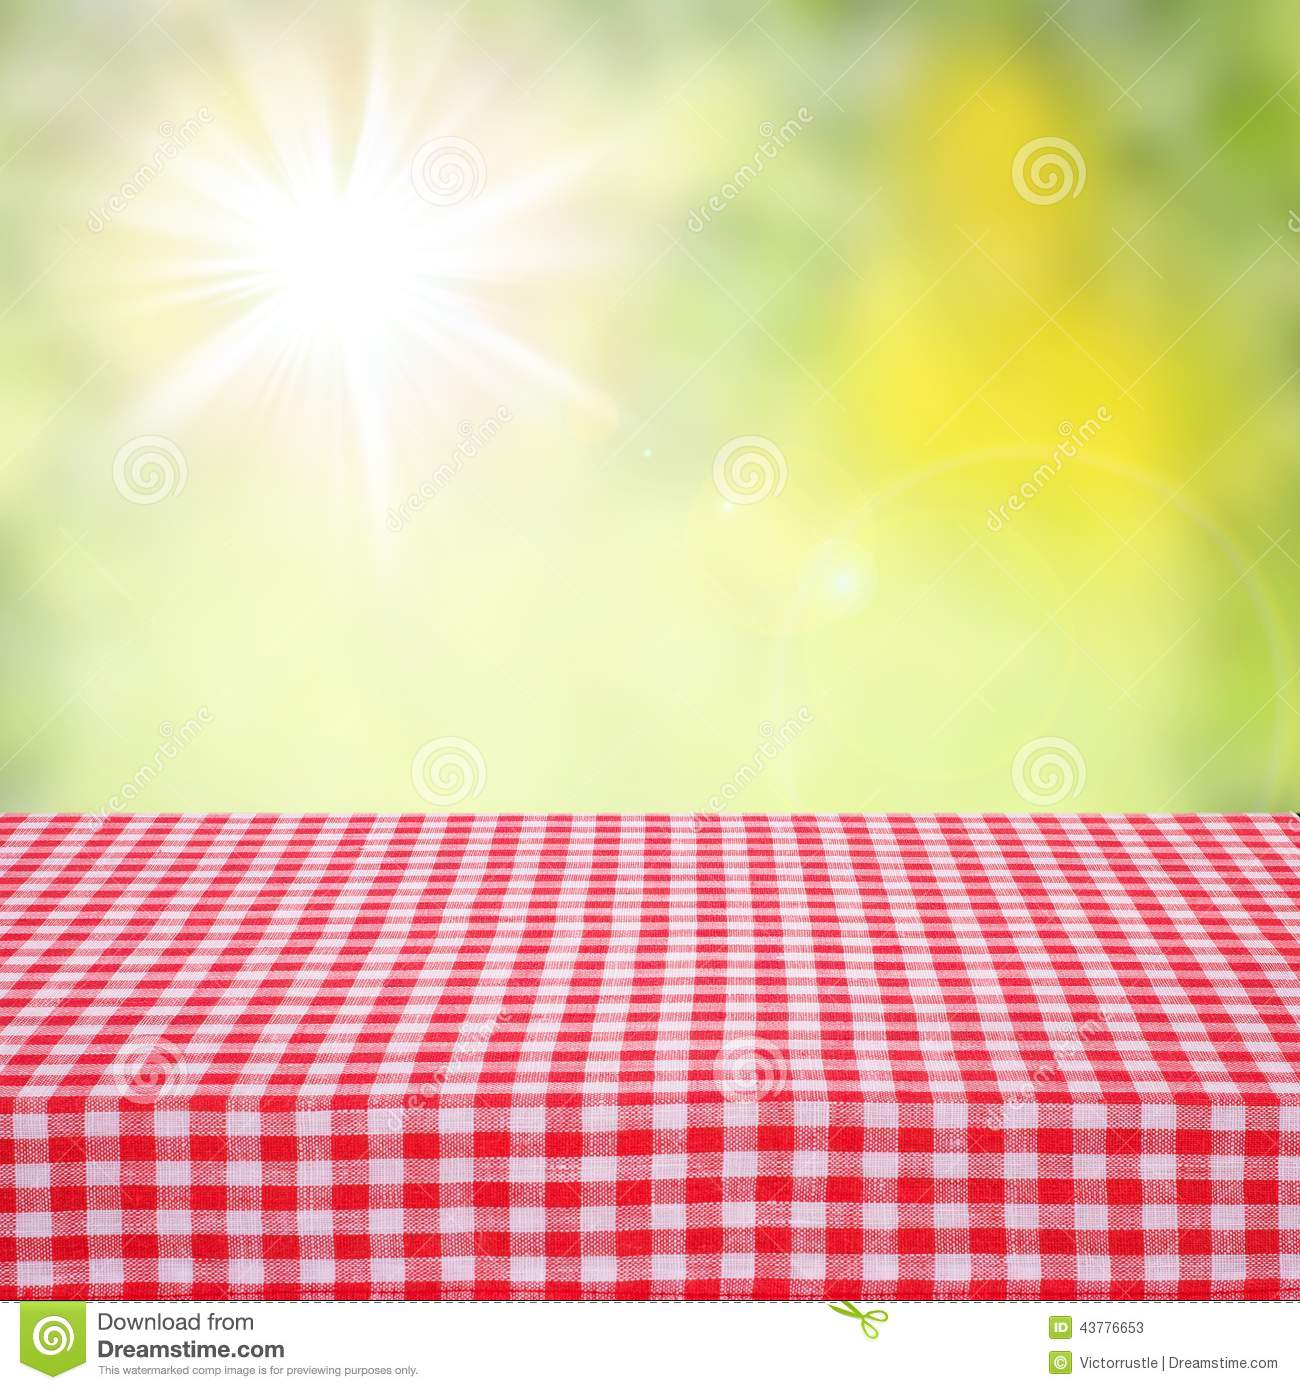 Product product id 157 as well 631906104017 moreover 48 in addition Stock Photo Canvas Texture Background Table Autumn Landscape Red Checked Tablecloth View Top Empty Tablecloth Product Image43776653 in addition Fieldmate Pro Electric Field Box Efla180. on product id checker